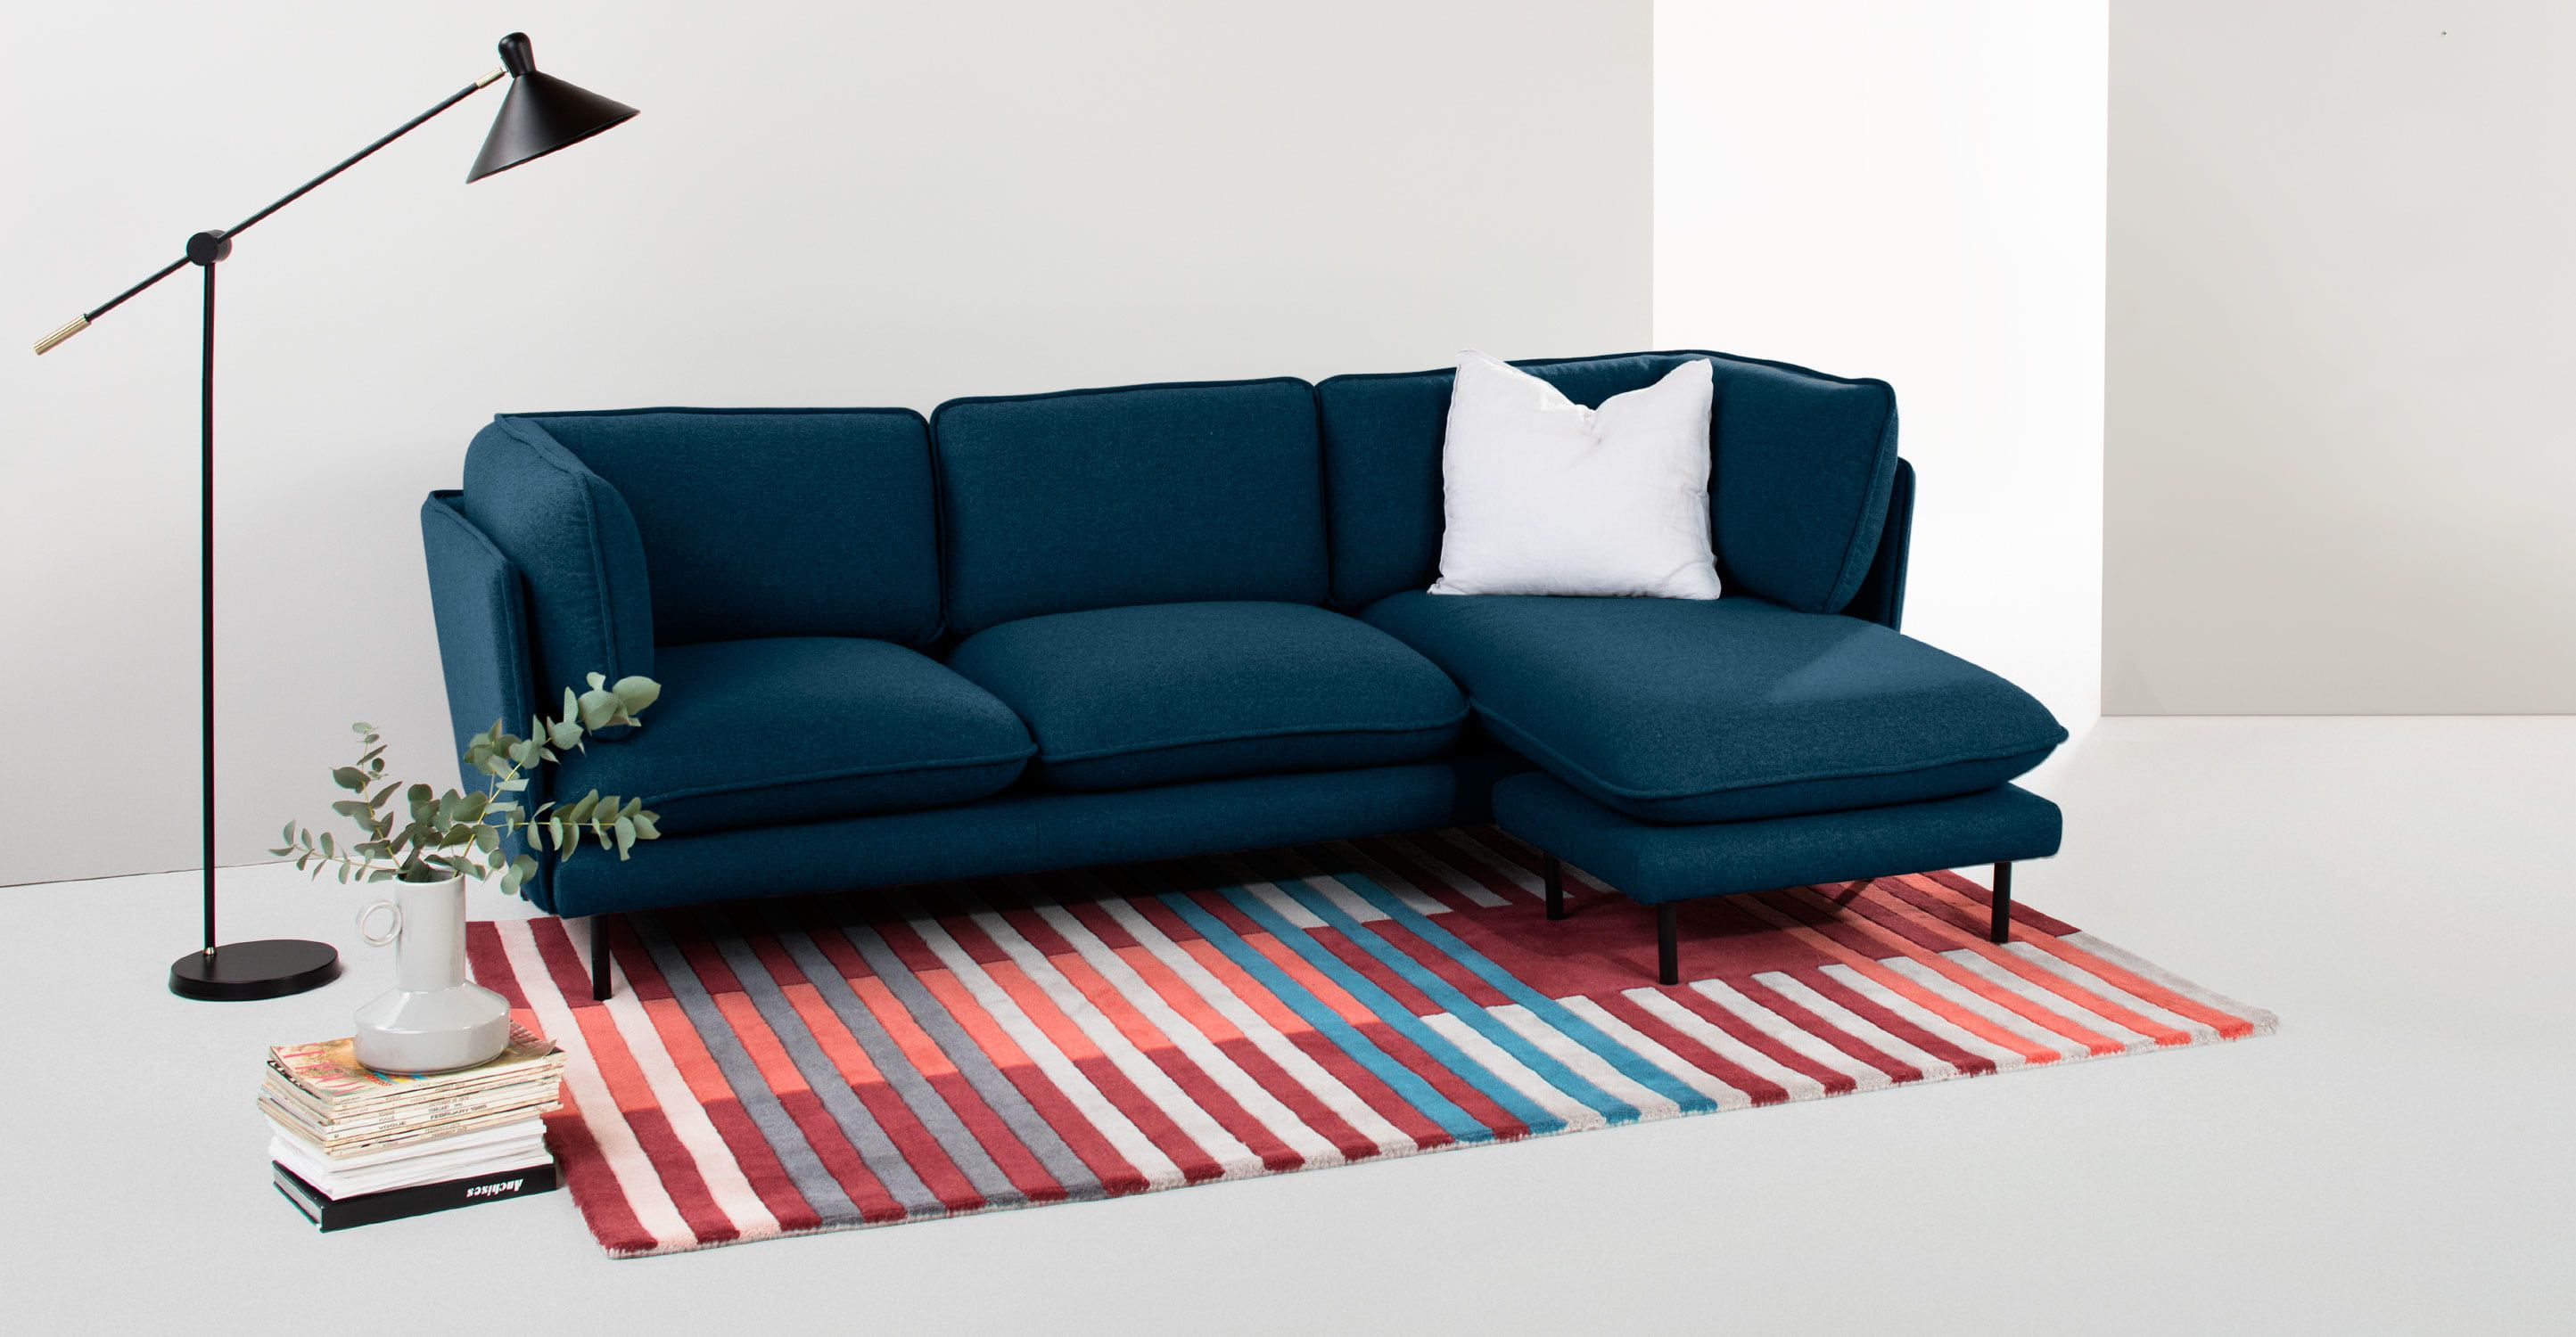 Wes corner chaise Petrol Teal from Made Express delivery